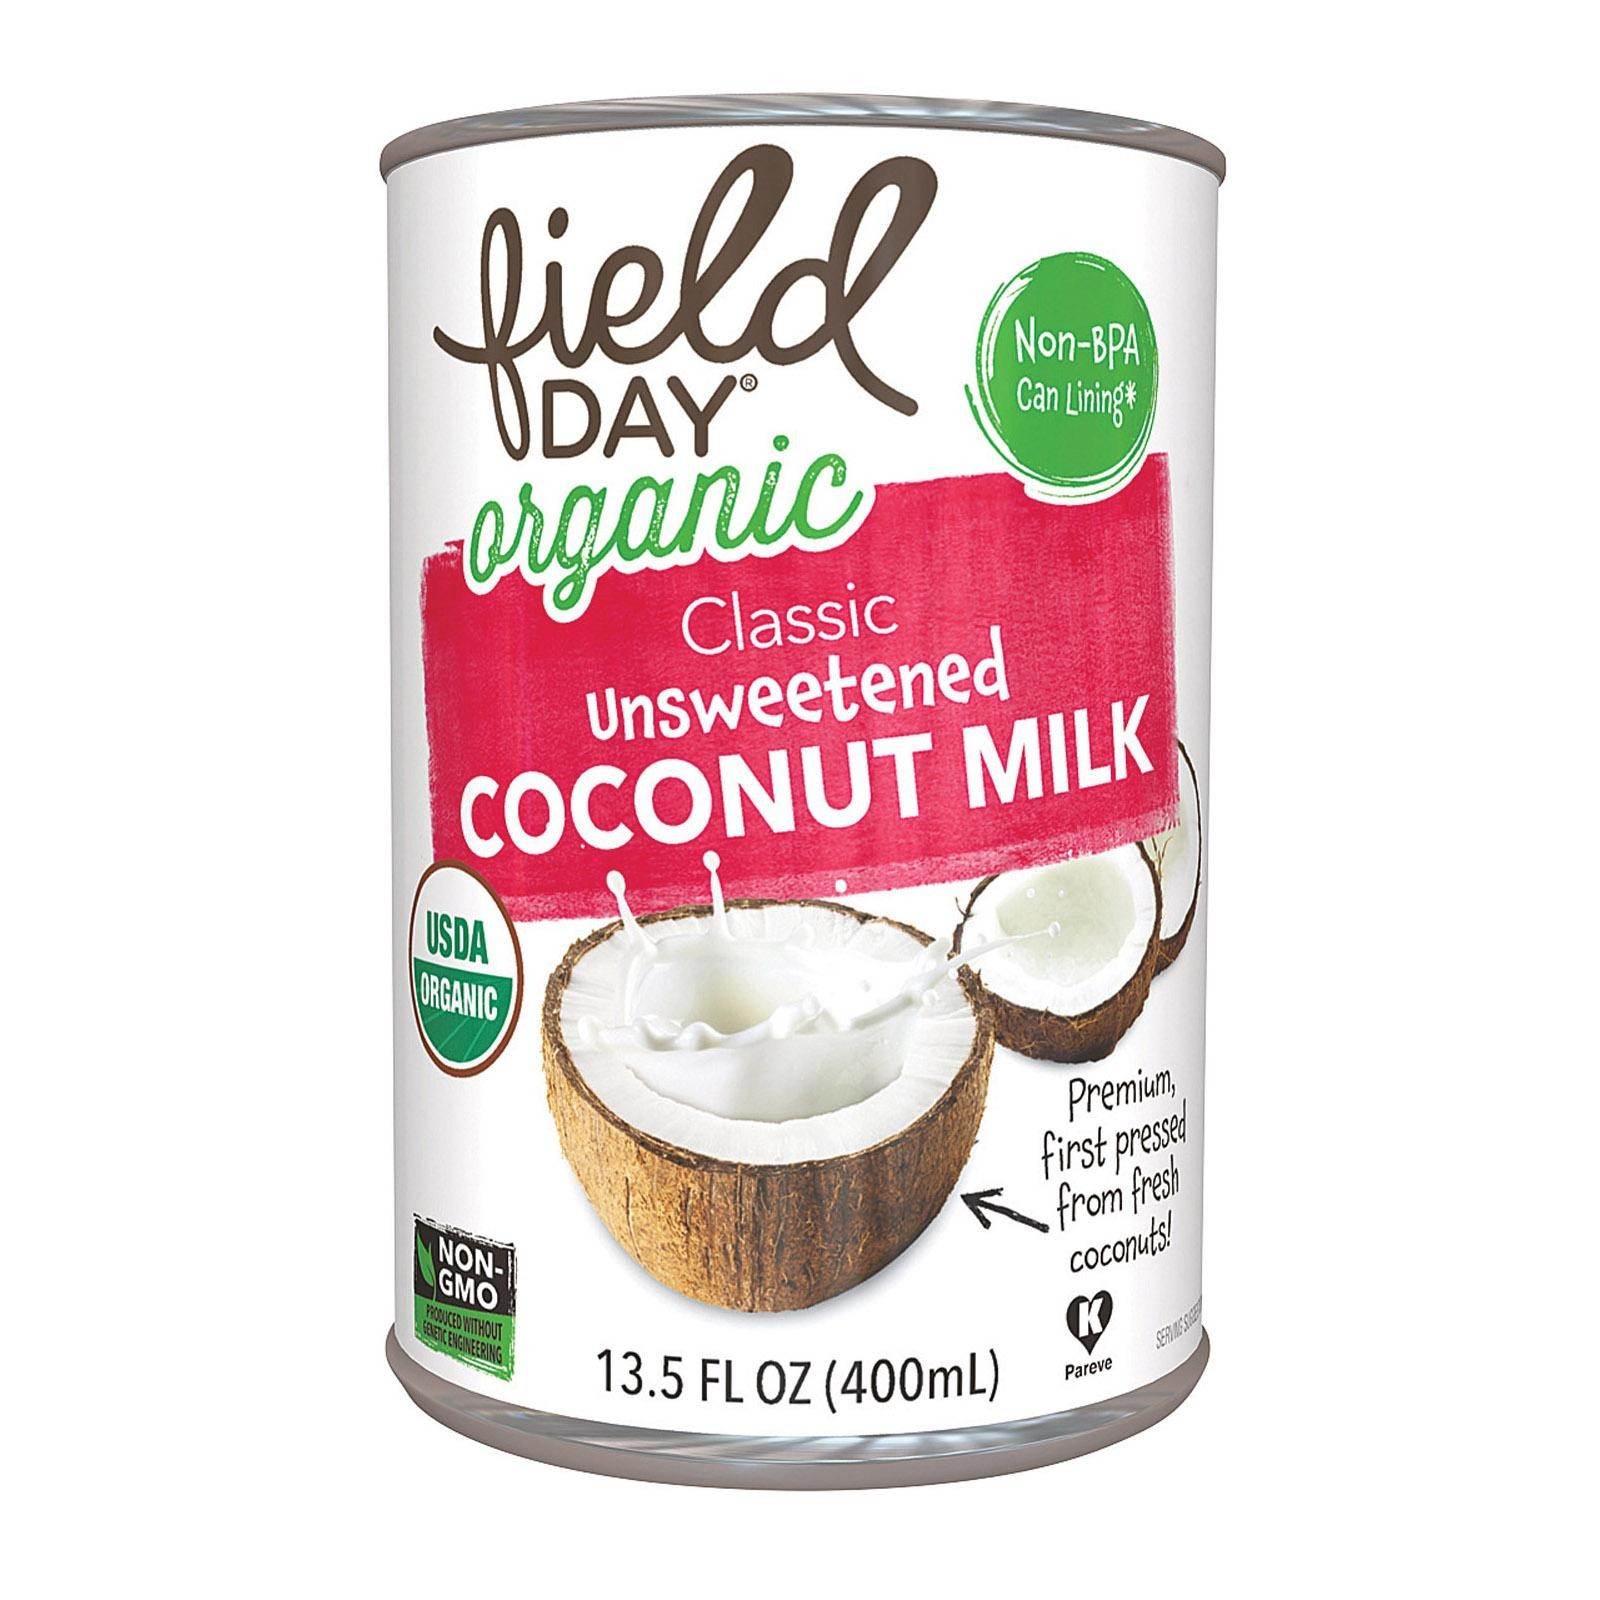 Field Day Organic Light Unsweetened Coconut Milk - Coconut Milk - pack of 12 - 13.5 Fl Oz.